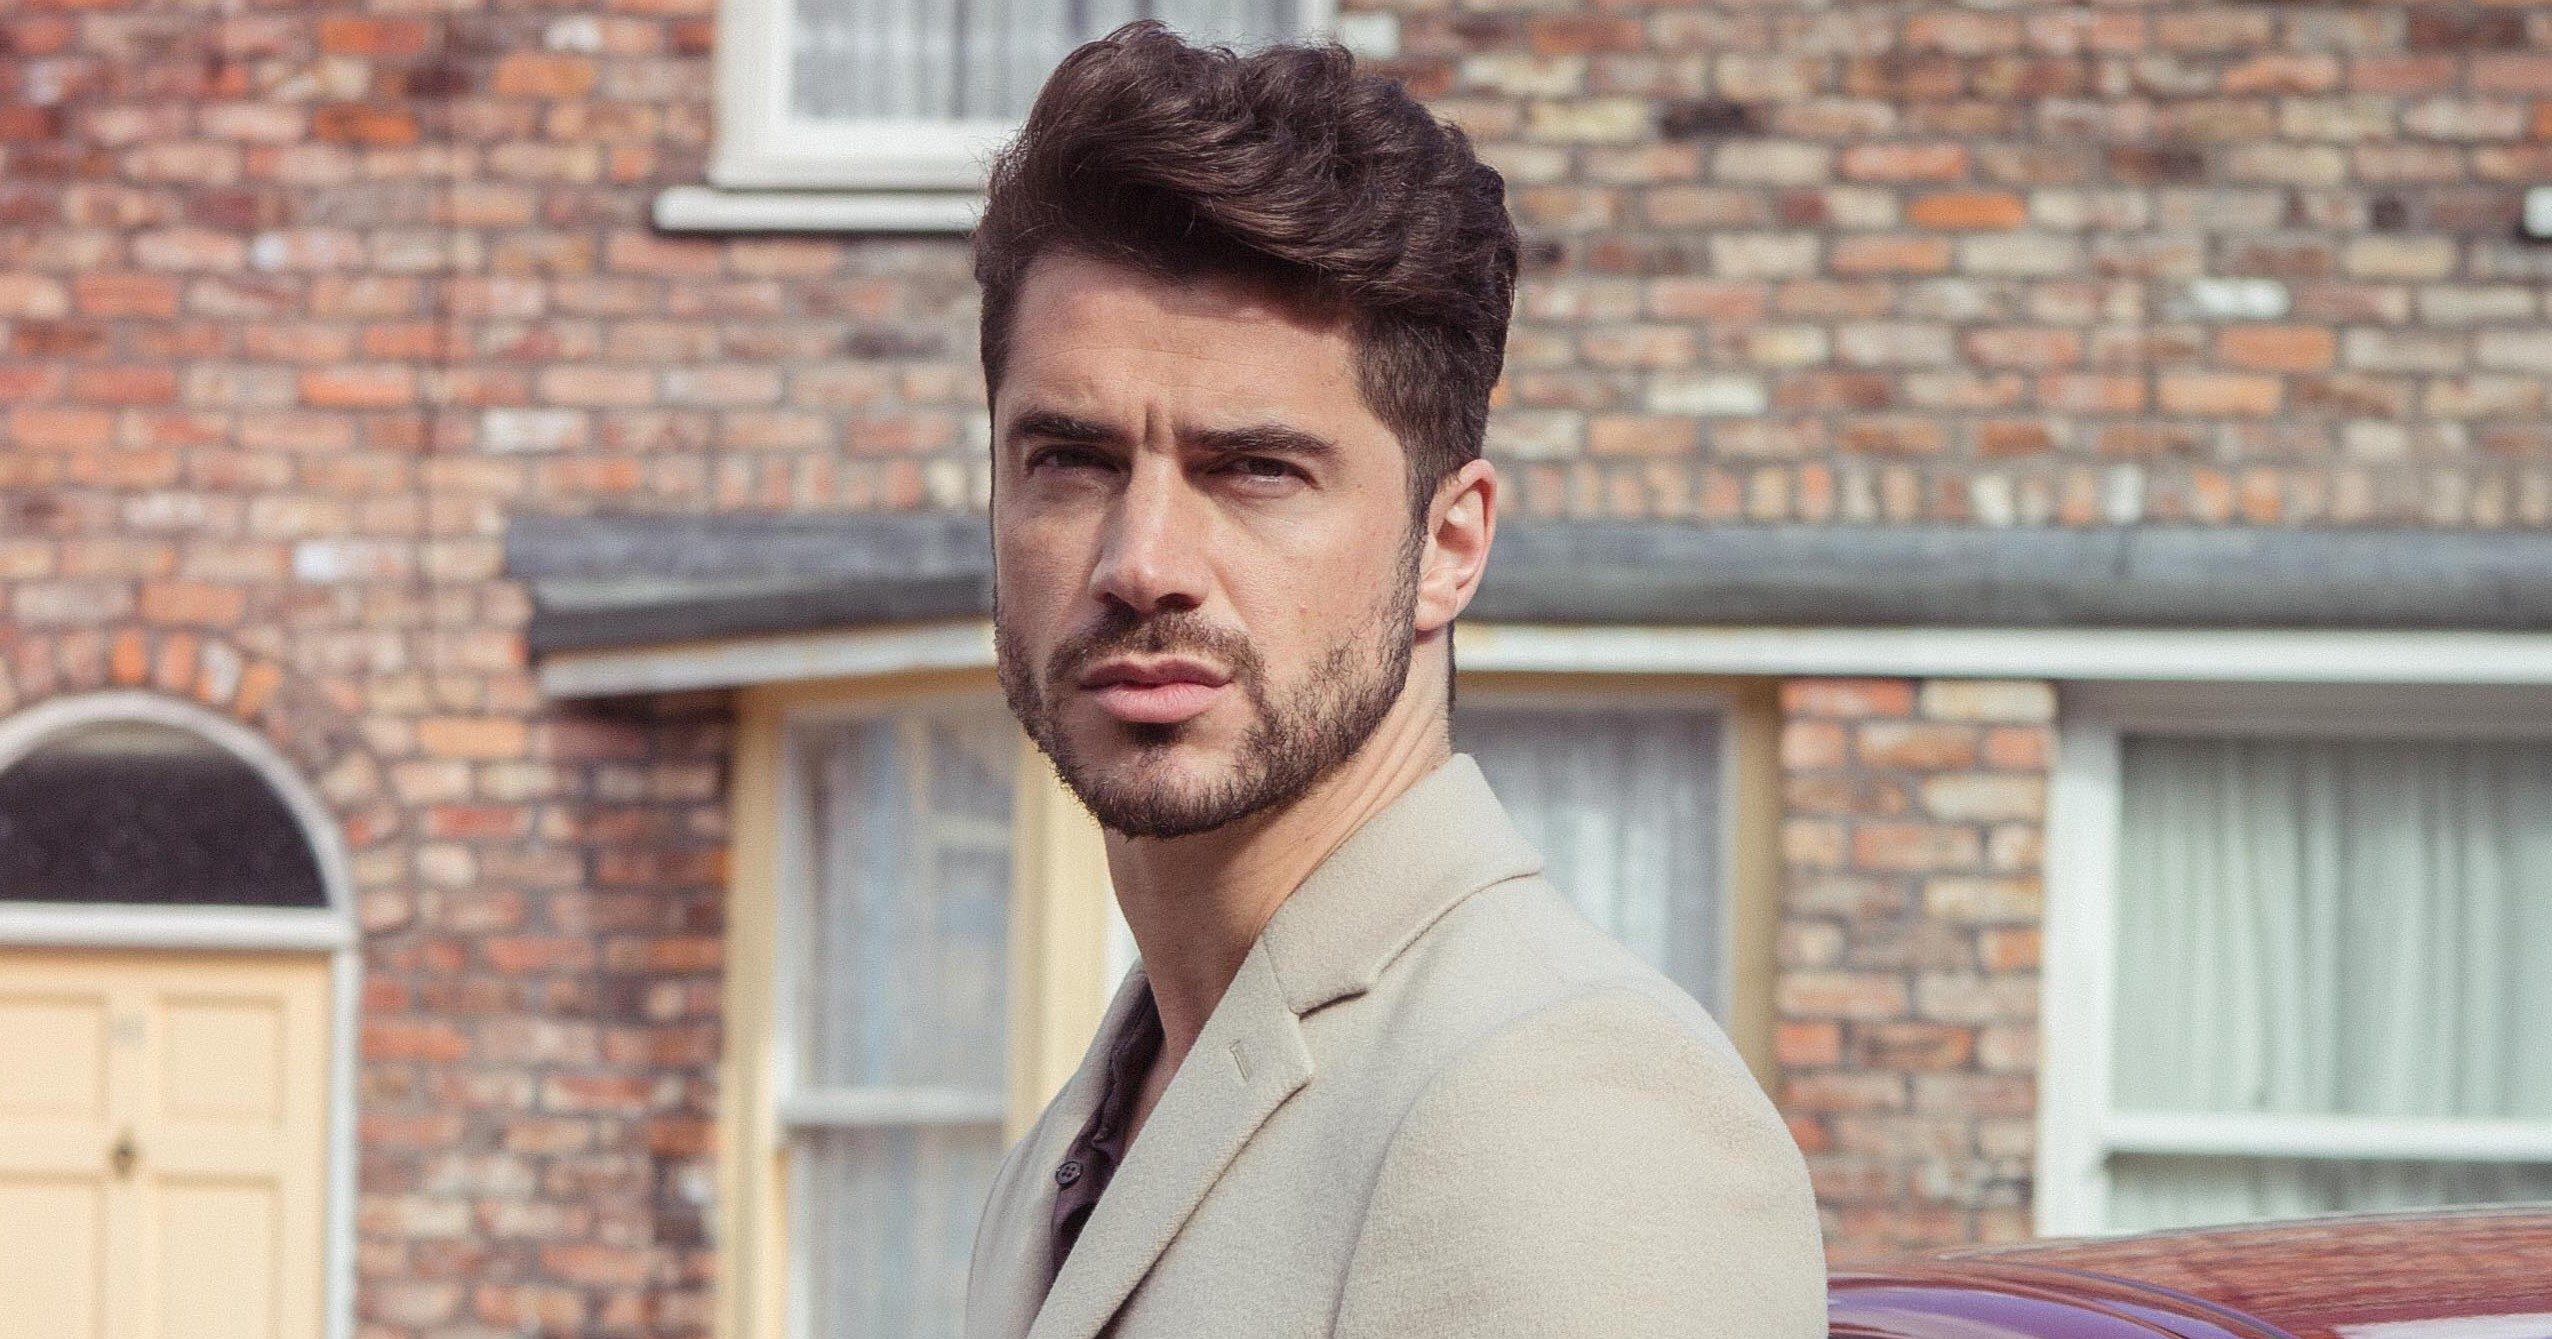 FROM ITV STRICT EMBARGO Tuesday 8 November 2016 Coronation Street - Ep 9035 Wednesday 16 November 2016 A flashy new Jaguar sweeps onto Coronation Street and parks outside Underworld. Adam Barlow [SAM ROBERTSON] steps out Picture contact: david.crook@itv.com on 0161 952 6214 Photographer - Mark Bruce This photograph is (C) ITV Plc and can only be reproduced for editorial purposes directly in connection with the programme or event mentioned above, or ITV plc. Once made available by ITV plc Picture Desk, this photograph can be reproduced once only up until the transmission [TX] date and no reproduction fee will be charged. Any subsequent usage may incur a fee. This photograph must not be manipulated [excluding basic cropping] in a manner which alters the visual appearance of the person photographed deemed detrimental or inappropriate by ITV plc Picture Desk. This photograph must not be syndicated to any other company, publication or website, or permanently archived, without the express written permission of ITV Plc Picture Desk. Full Terms and conditions are available on the website www.itvpictures.com